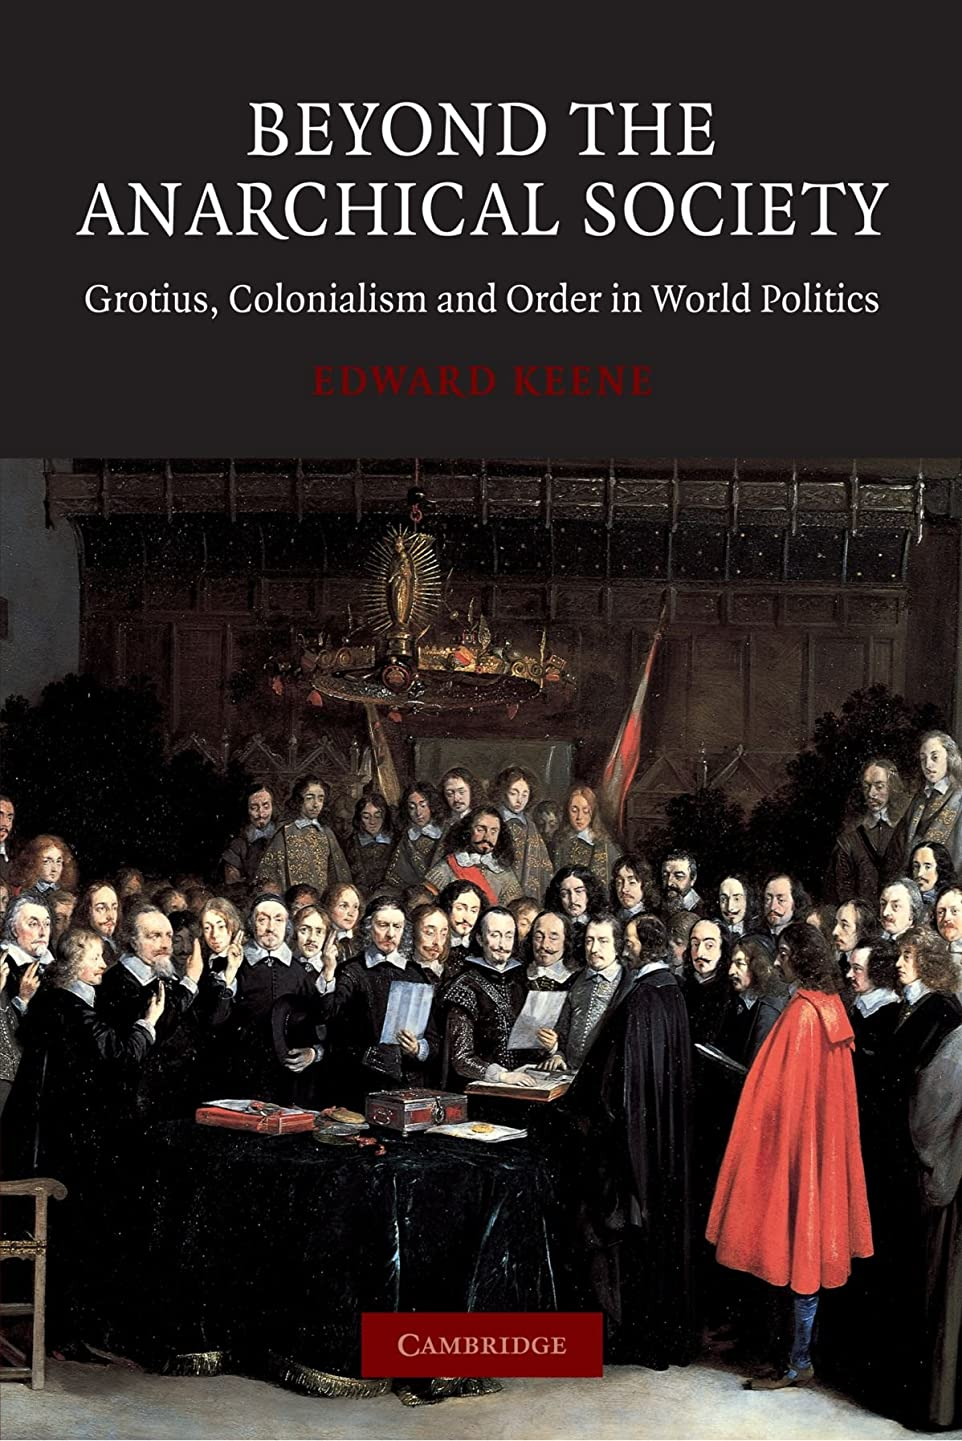 満足できる埋めるいたずらBeyond the Anarchical Society: Grotius, Colonialism and Order in World Politics (LSE Monographs in International Studies)